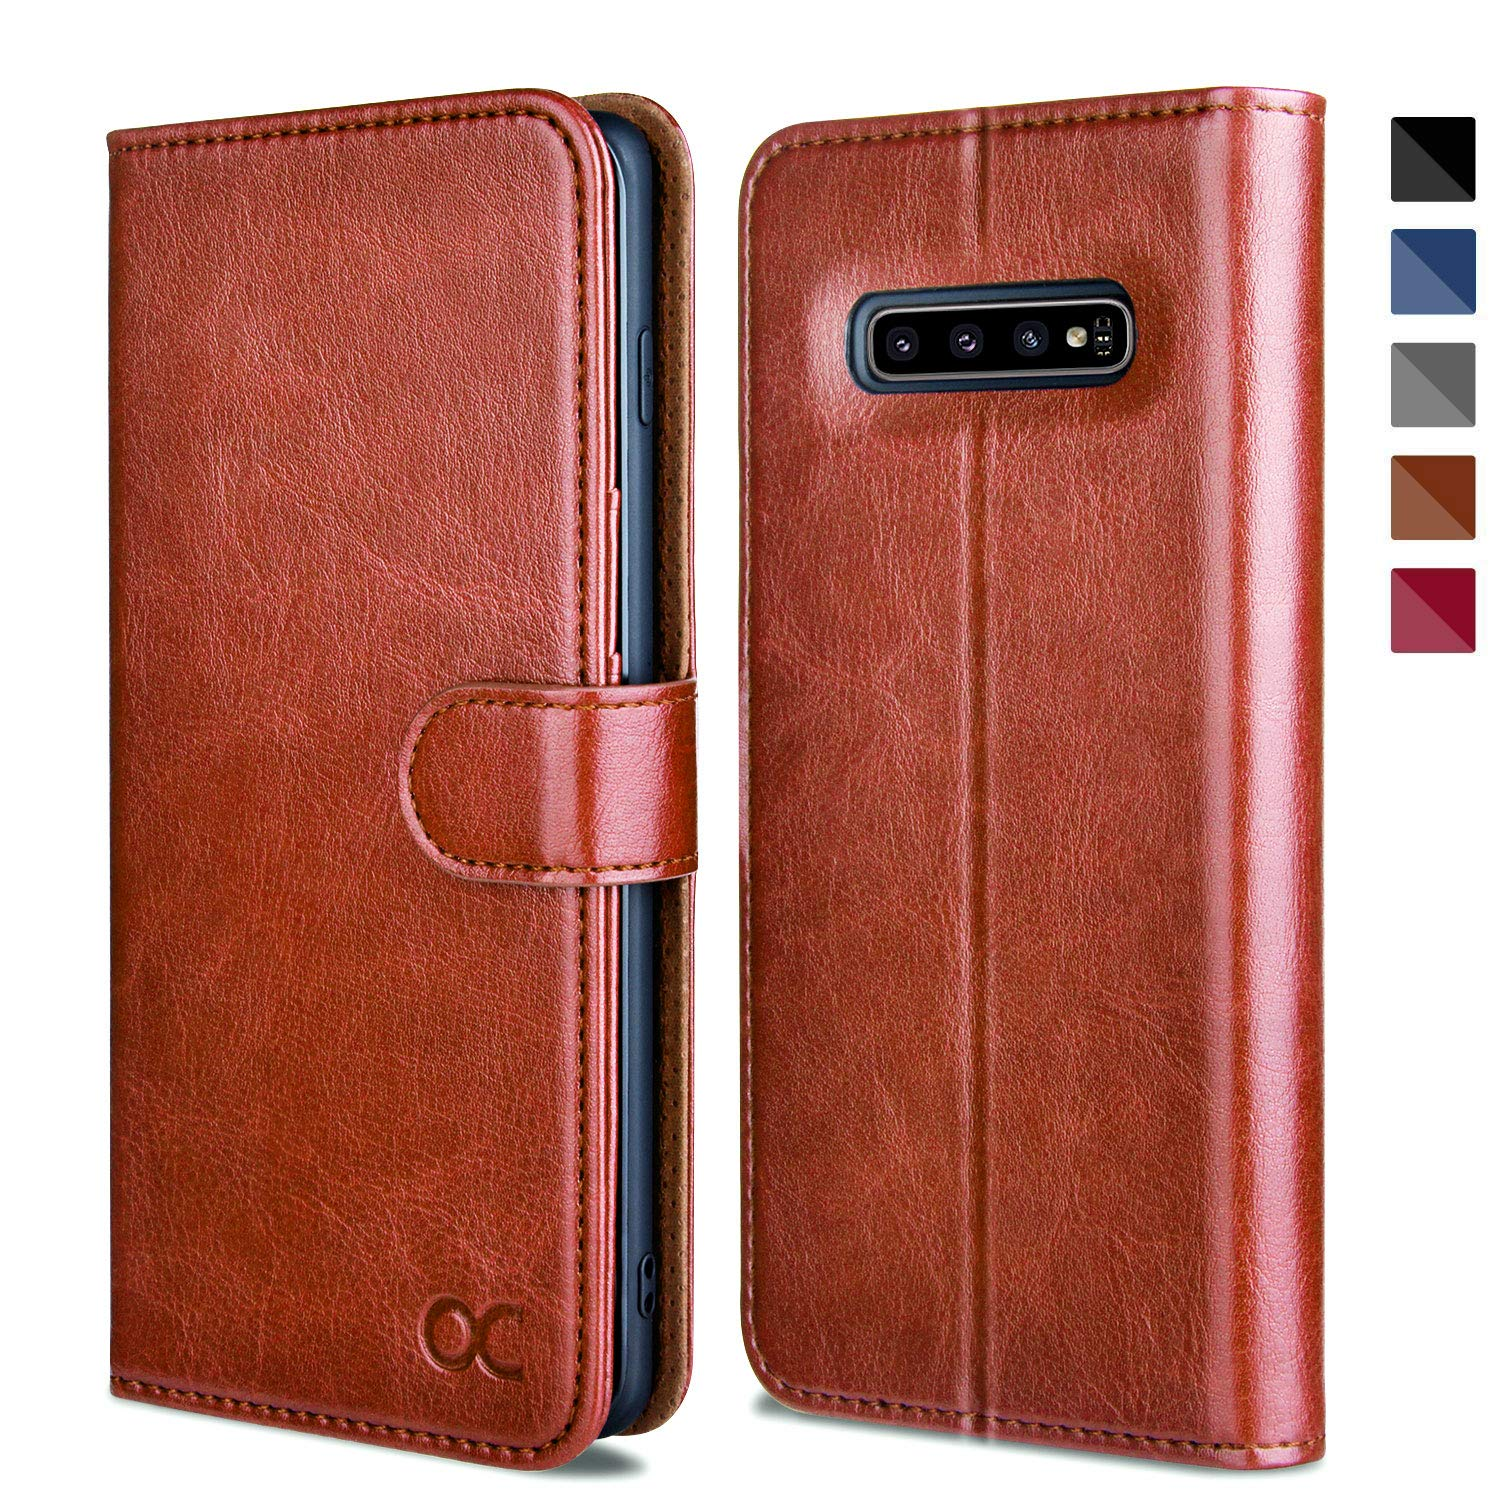 Blue Kickstand Leather Flip Wallet Case for Samsung Galaxy S10 Plus // S10+ Devices Card Slot TPU Shockproof Interior OCASE Samsung Galaxy S10 Plus // S10+ Case